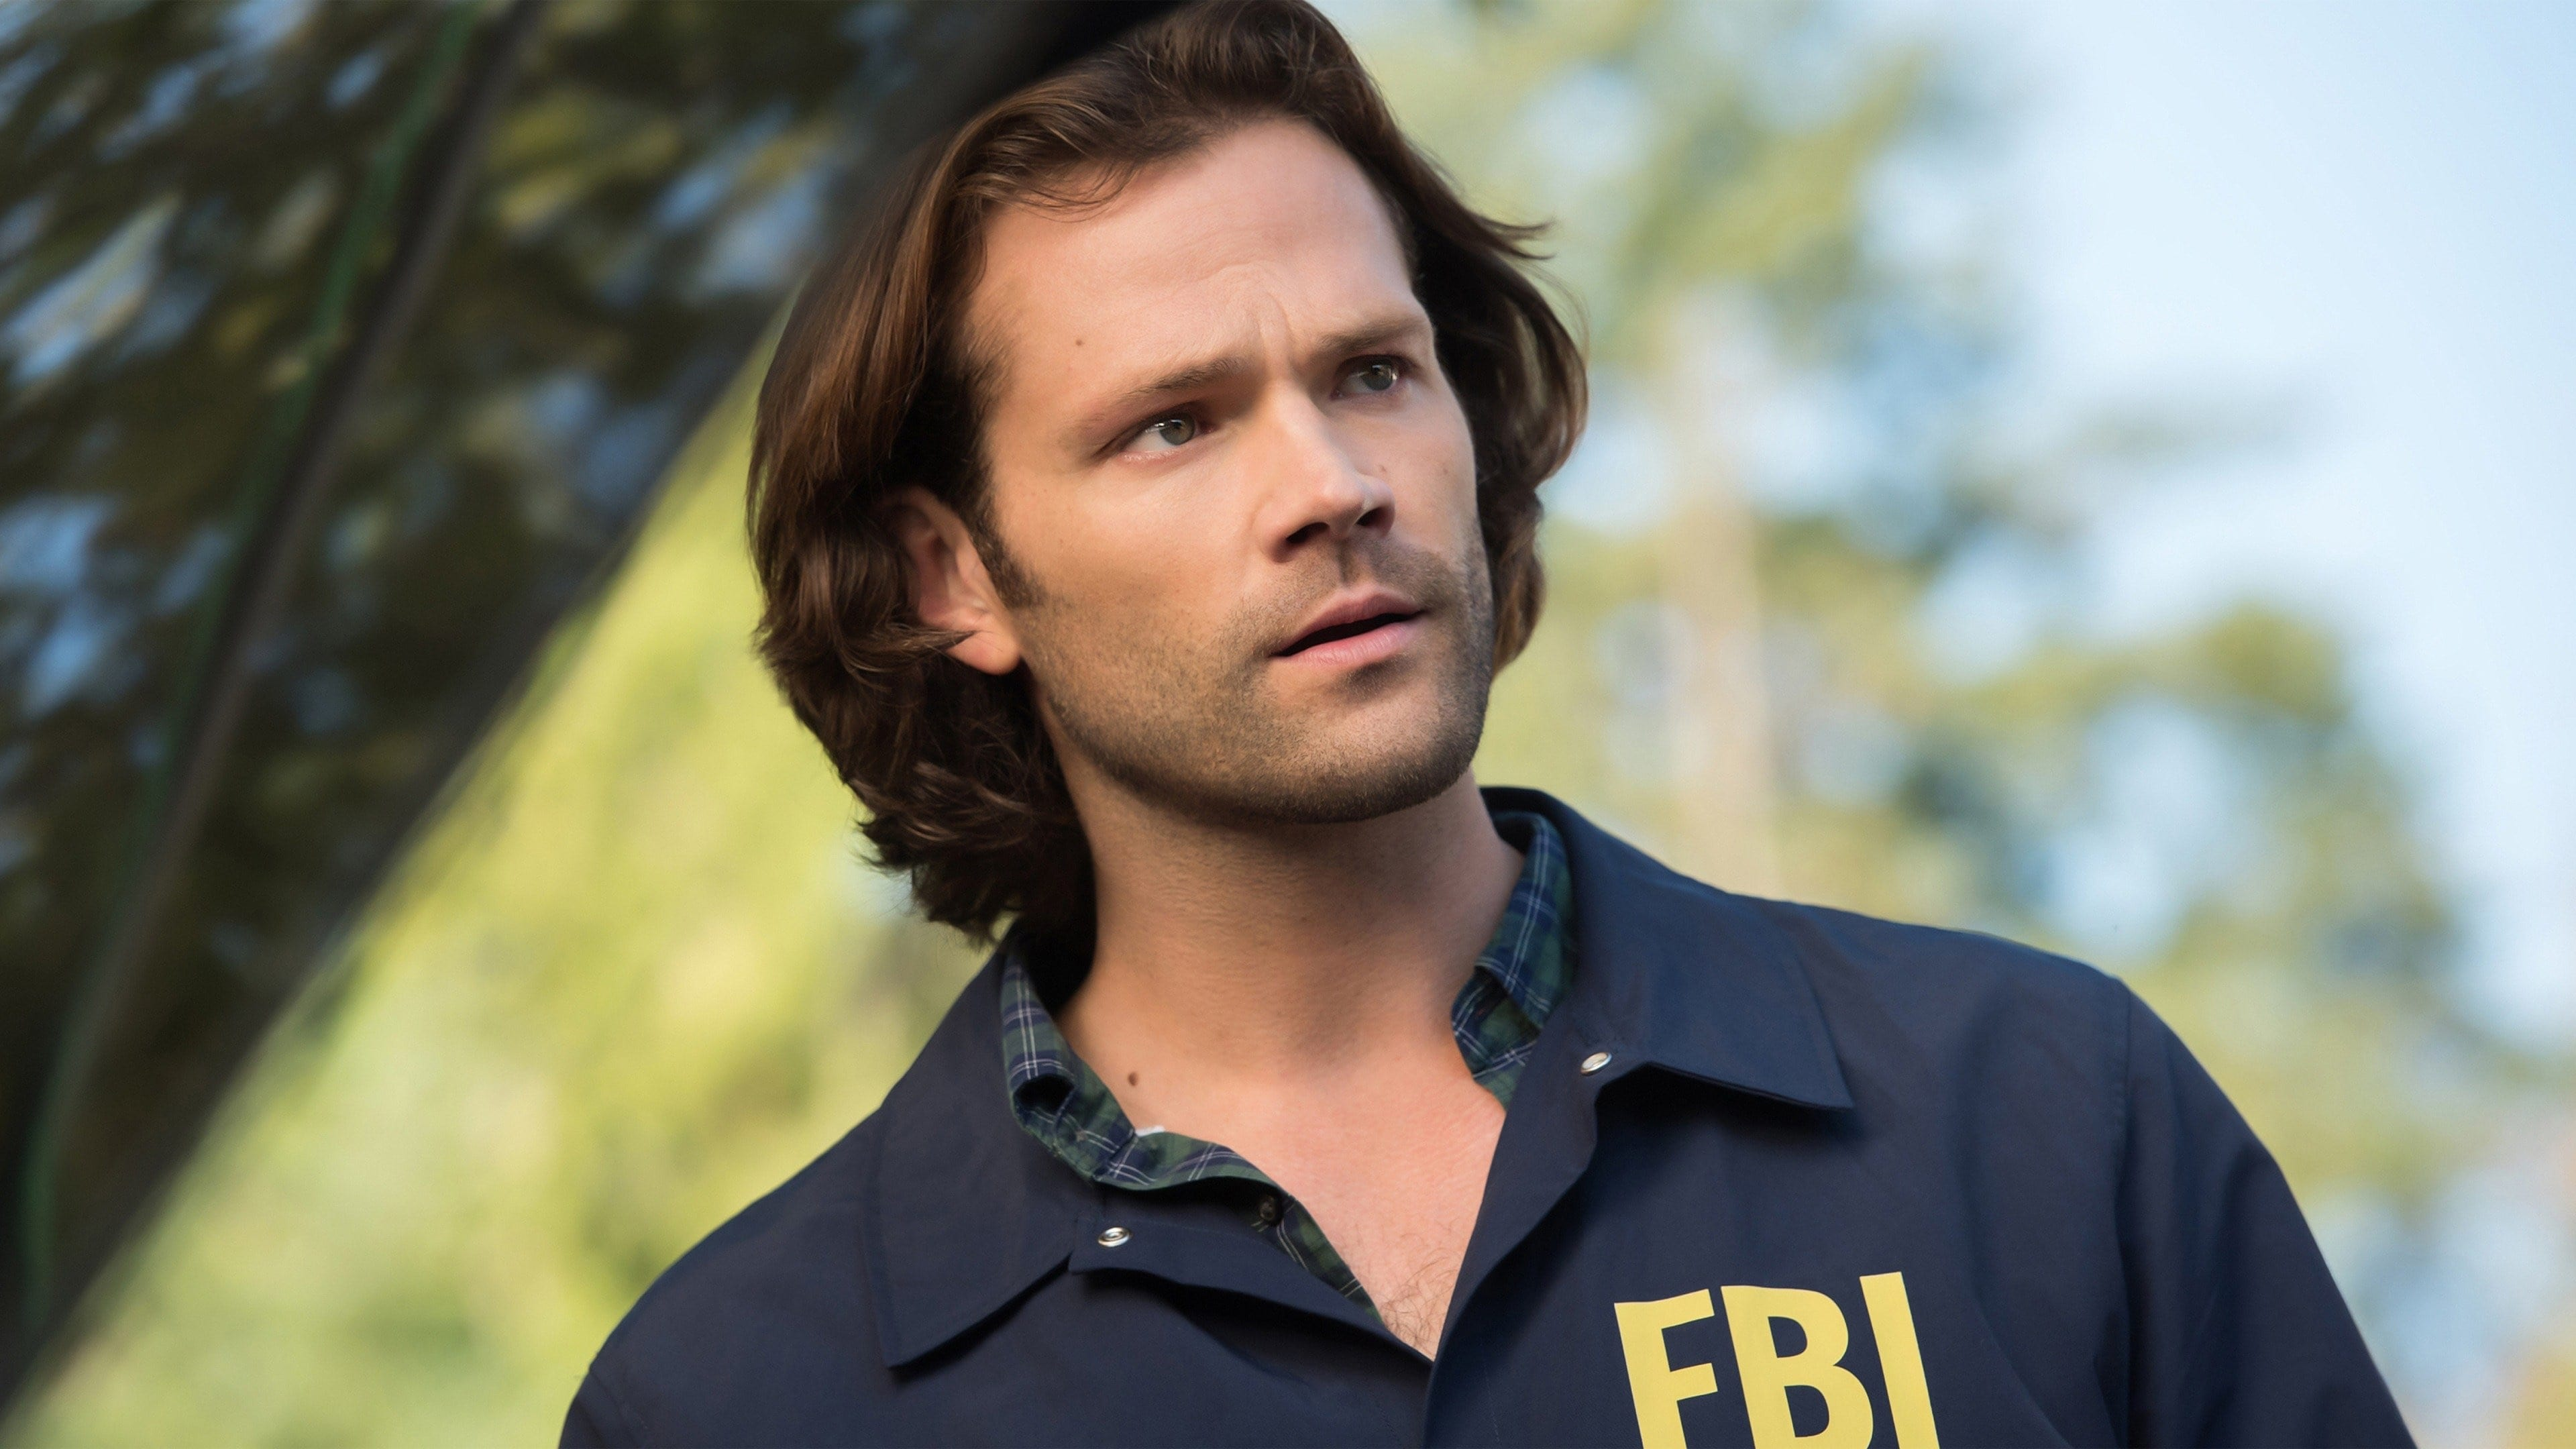 supernatural season 15 episode 4 - HD 3840×2160